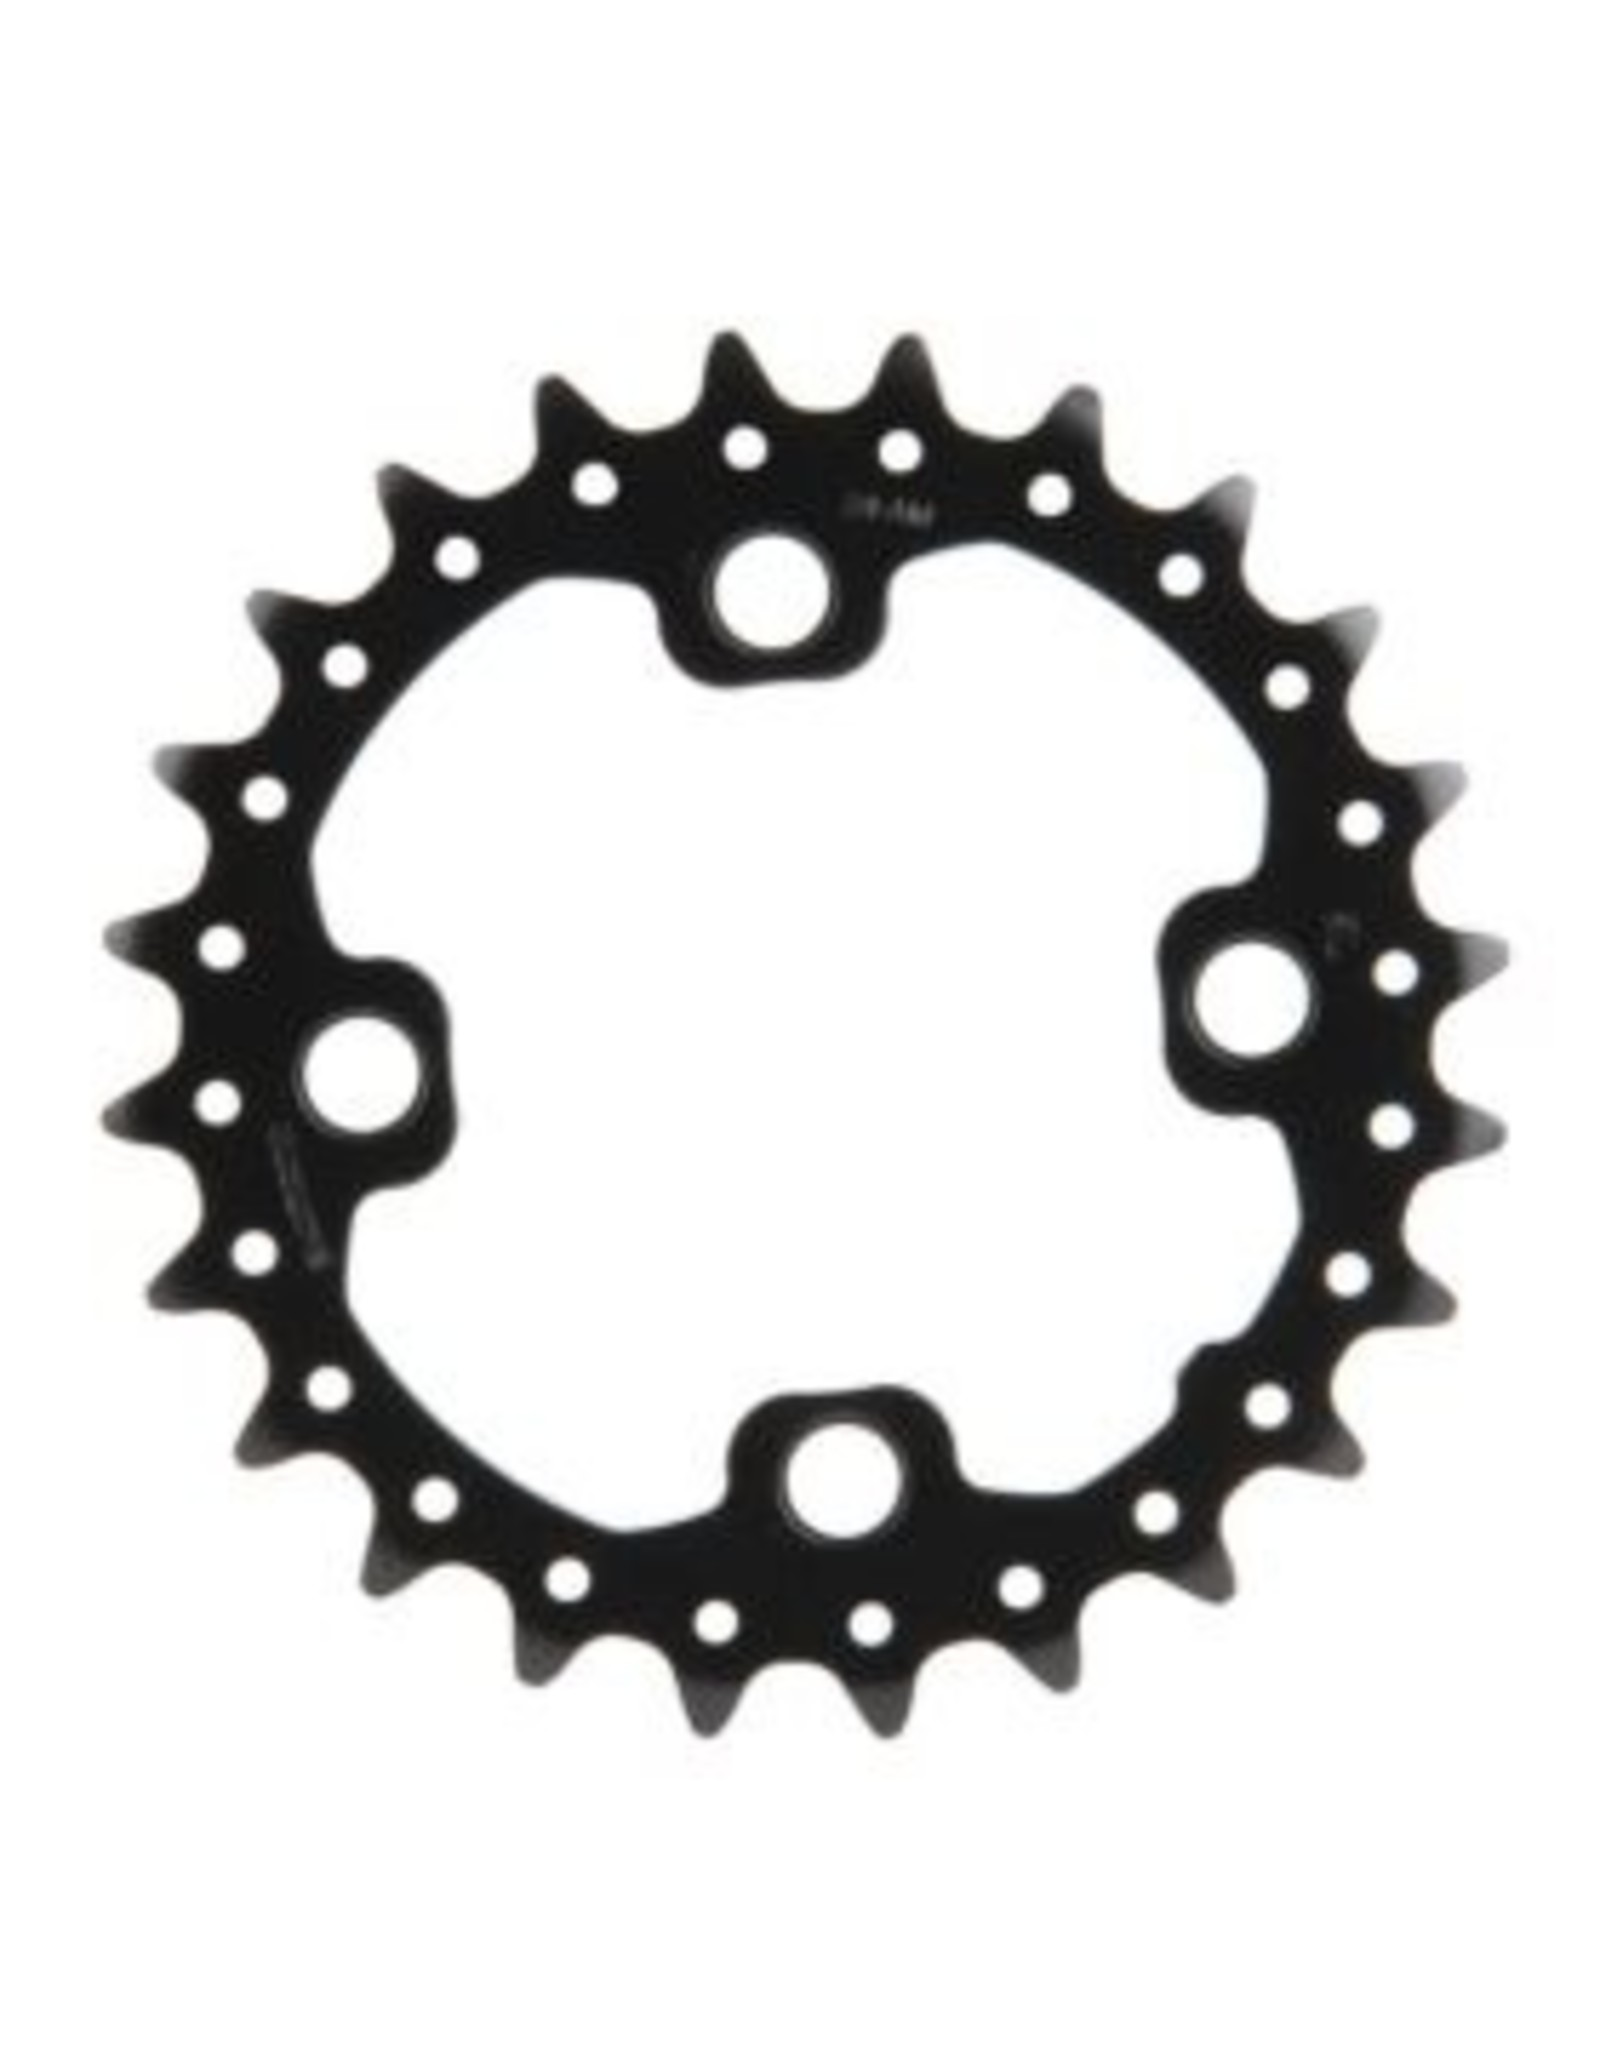 SHIMANO Shimano Y1NA24000 24T 10-Speed BCD: 64mm, 4 Bolt, SLX FC-M675, Inner Chainring, For 24/38, Aluminum, Black